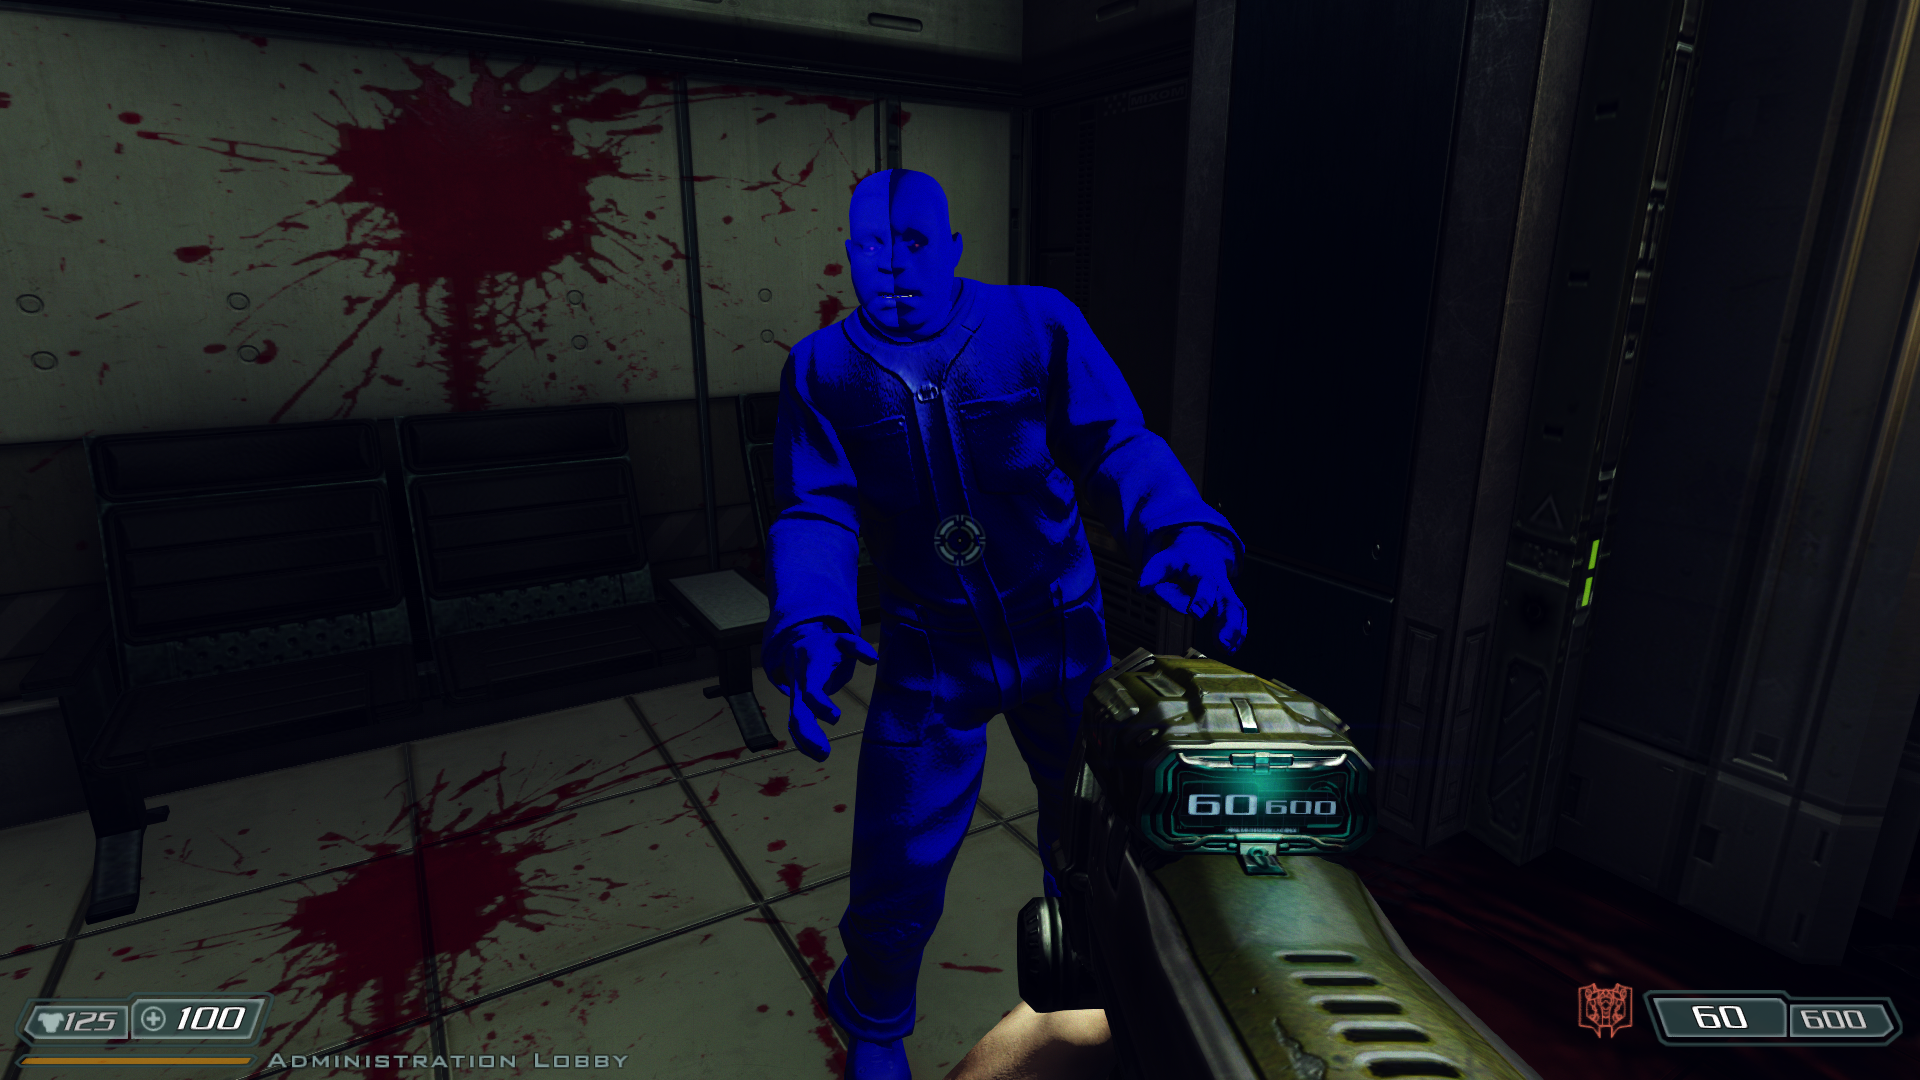 Completely Blue glitch in Doom 3 BFG Mod by Hoover1979